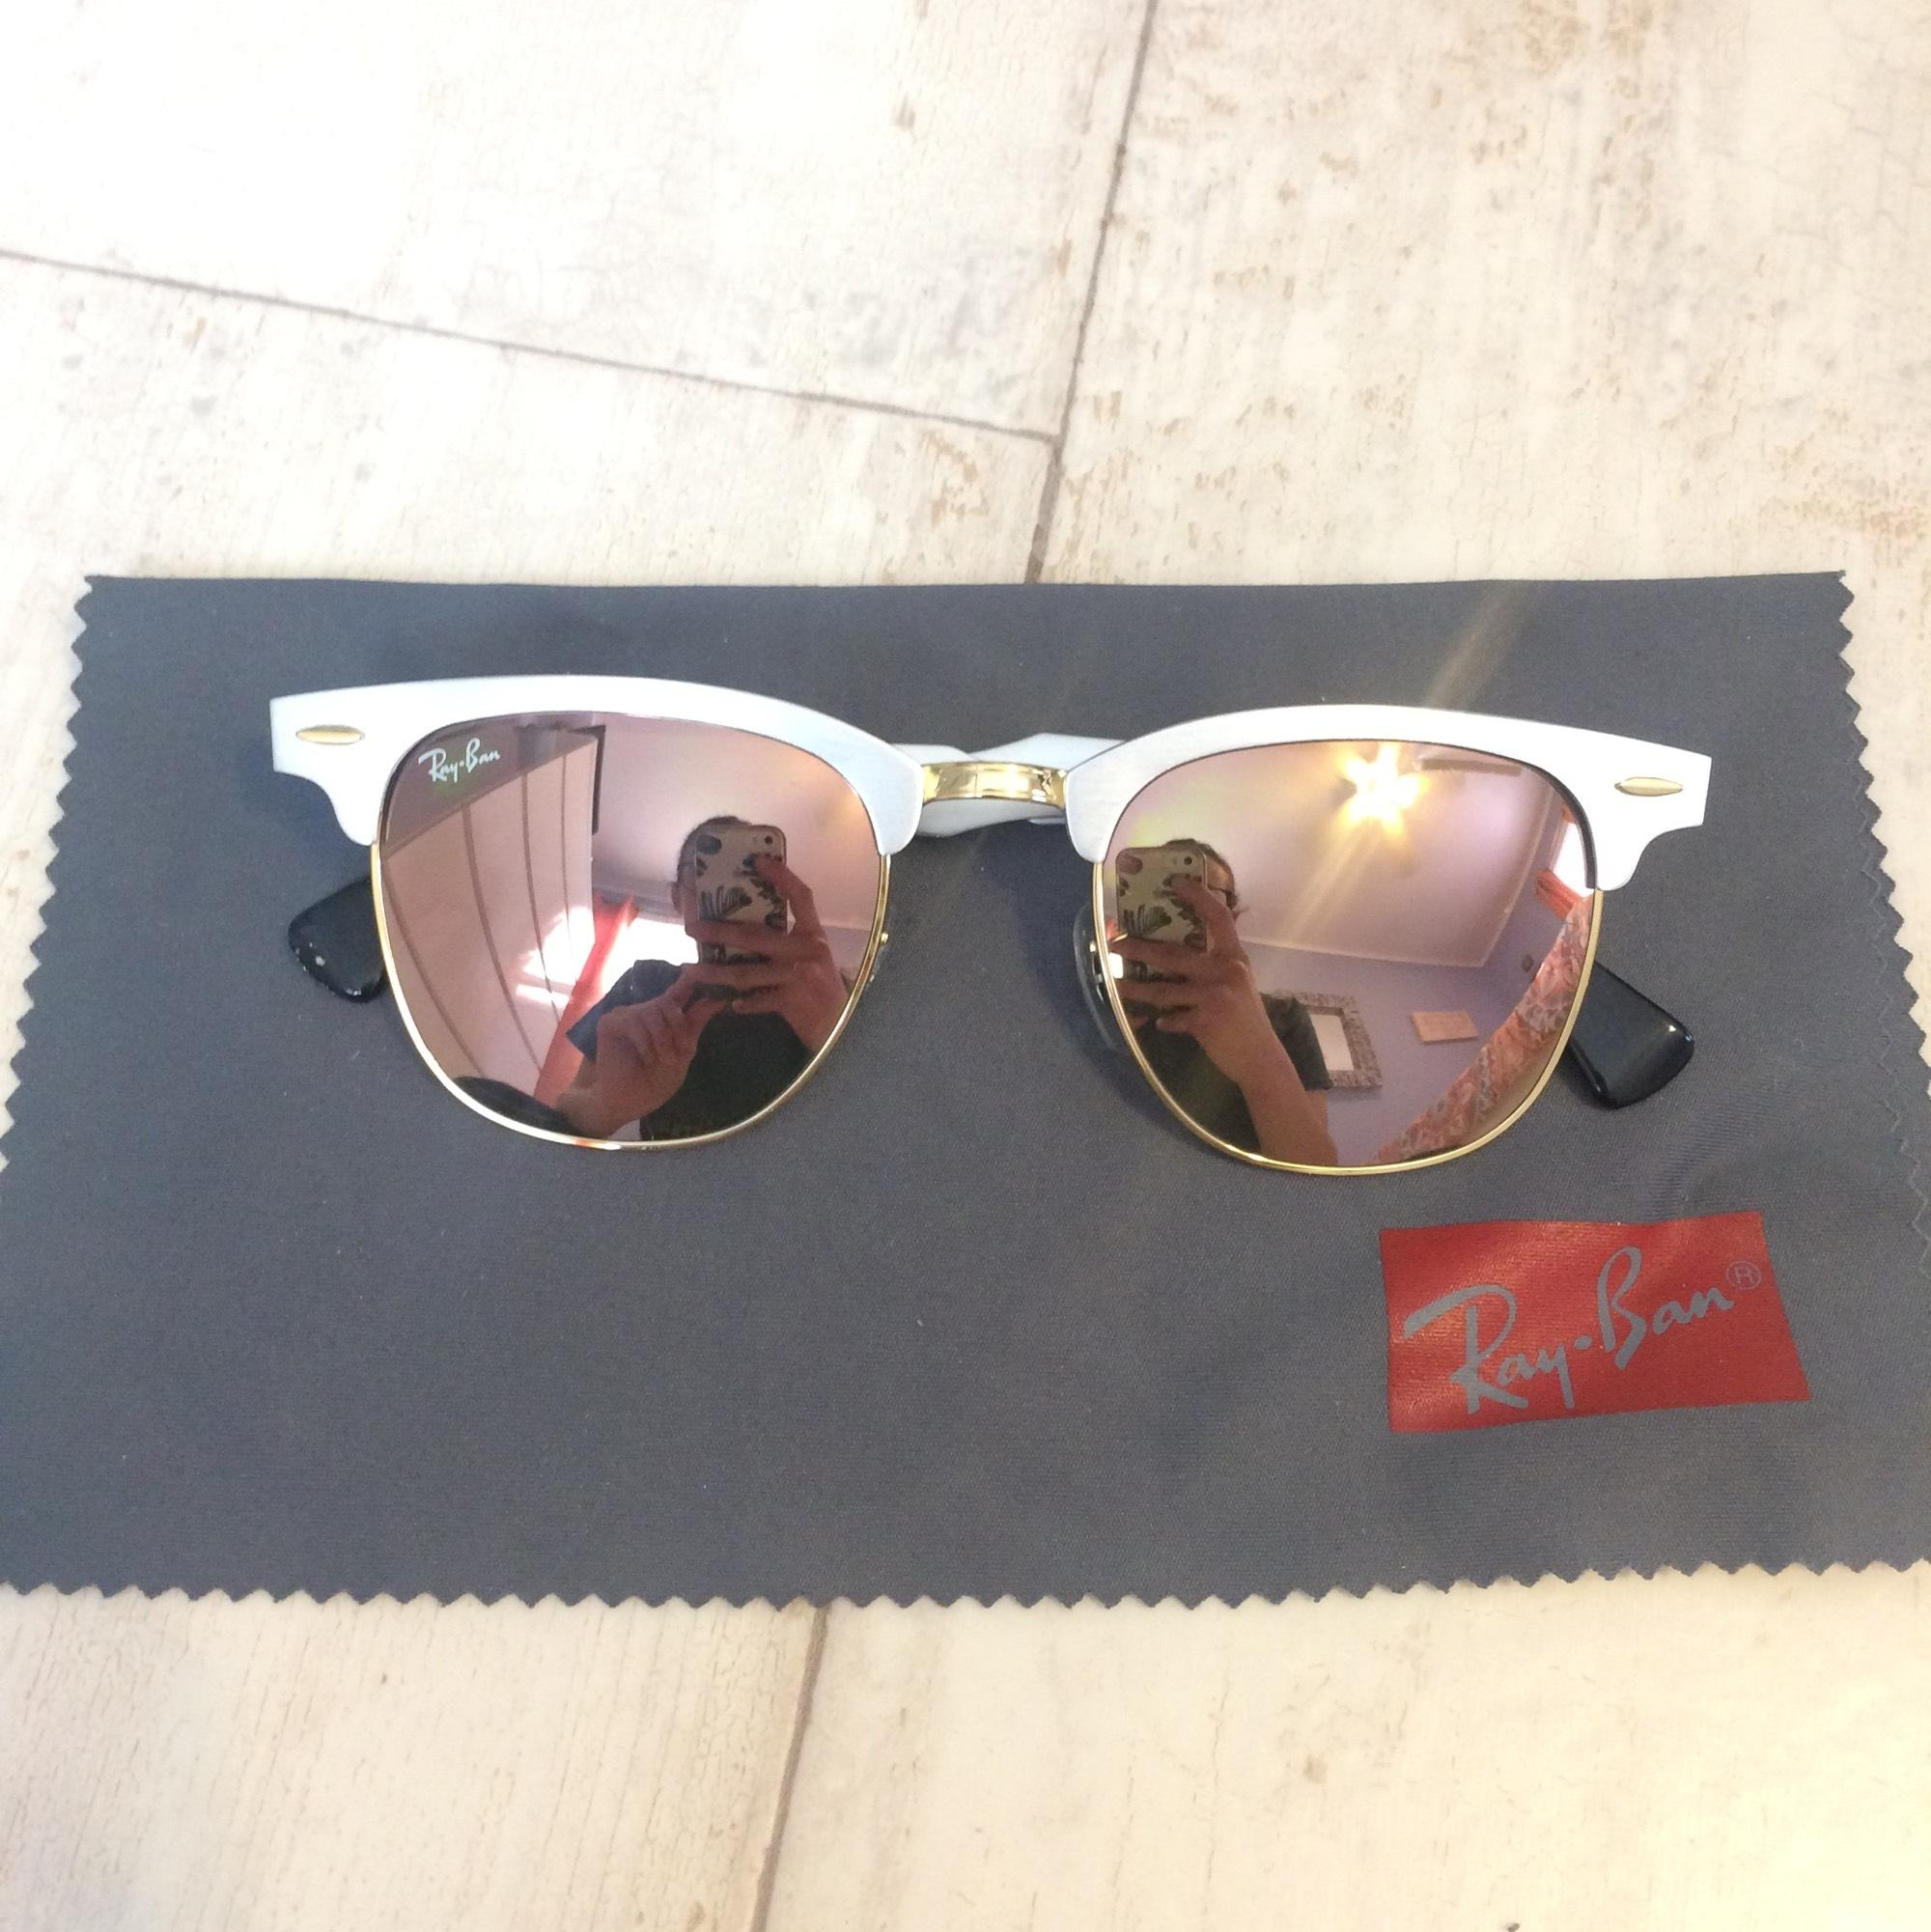 9201e0fad25e6 shopping ray ban clubmaster aluminum rb3507 sunglasses 931bf af3c1  50% off ray  ban aluminum clubmaster review a0da0 bb50f